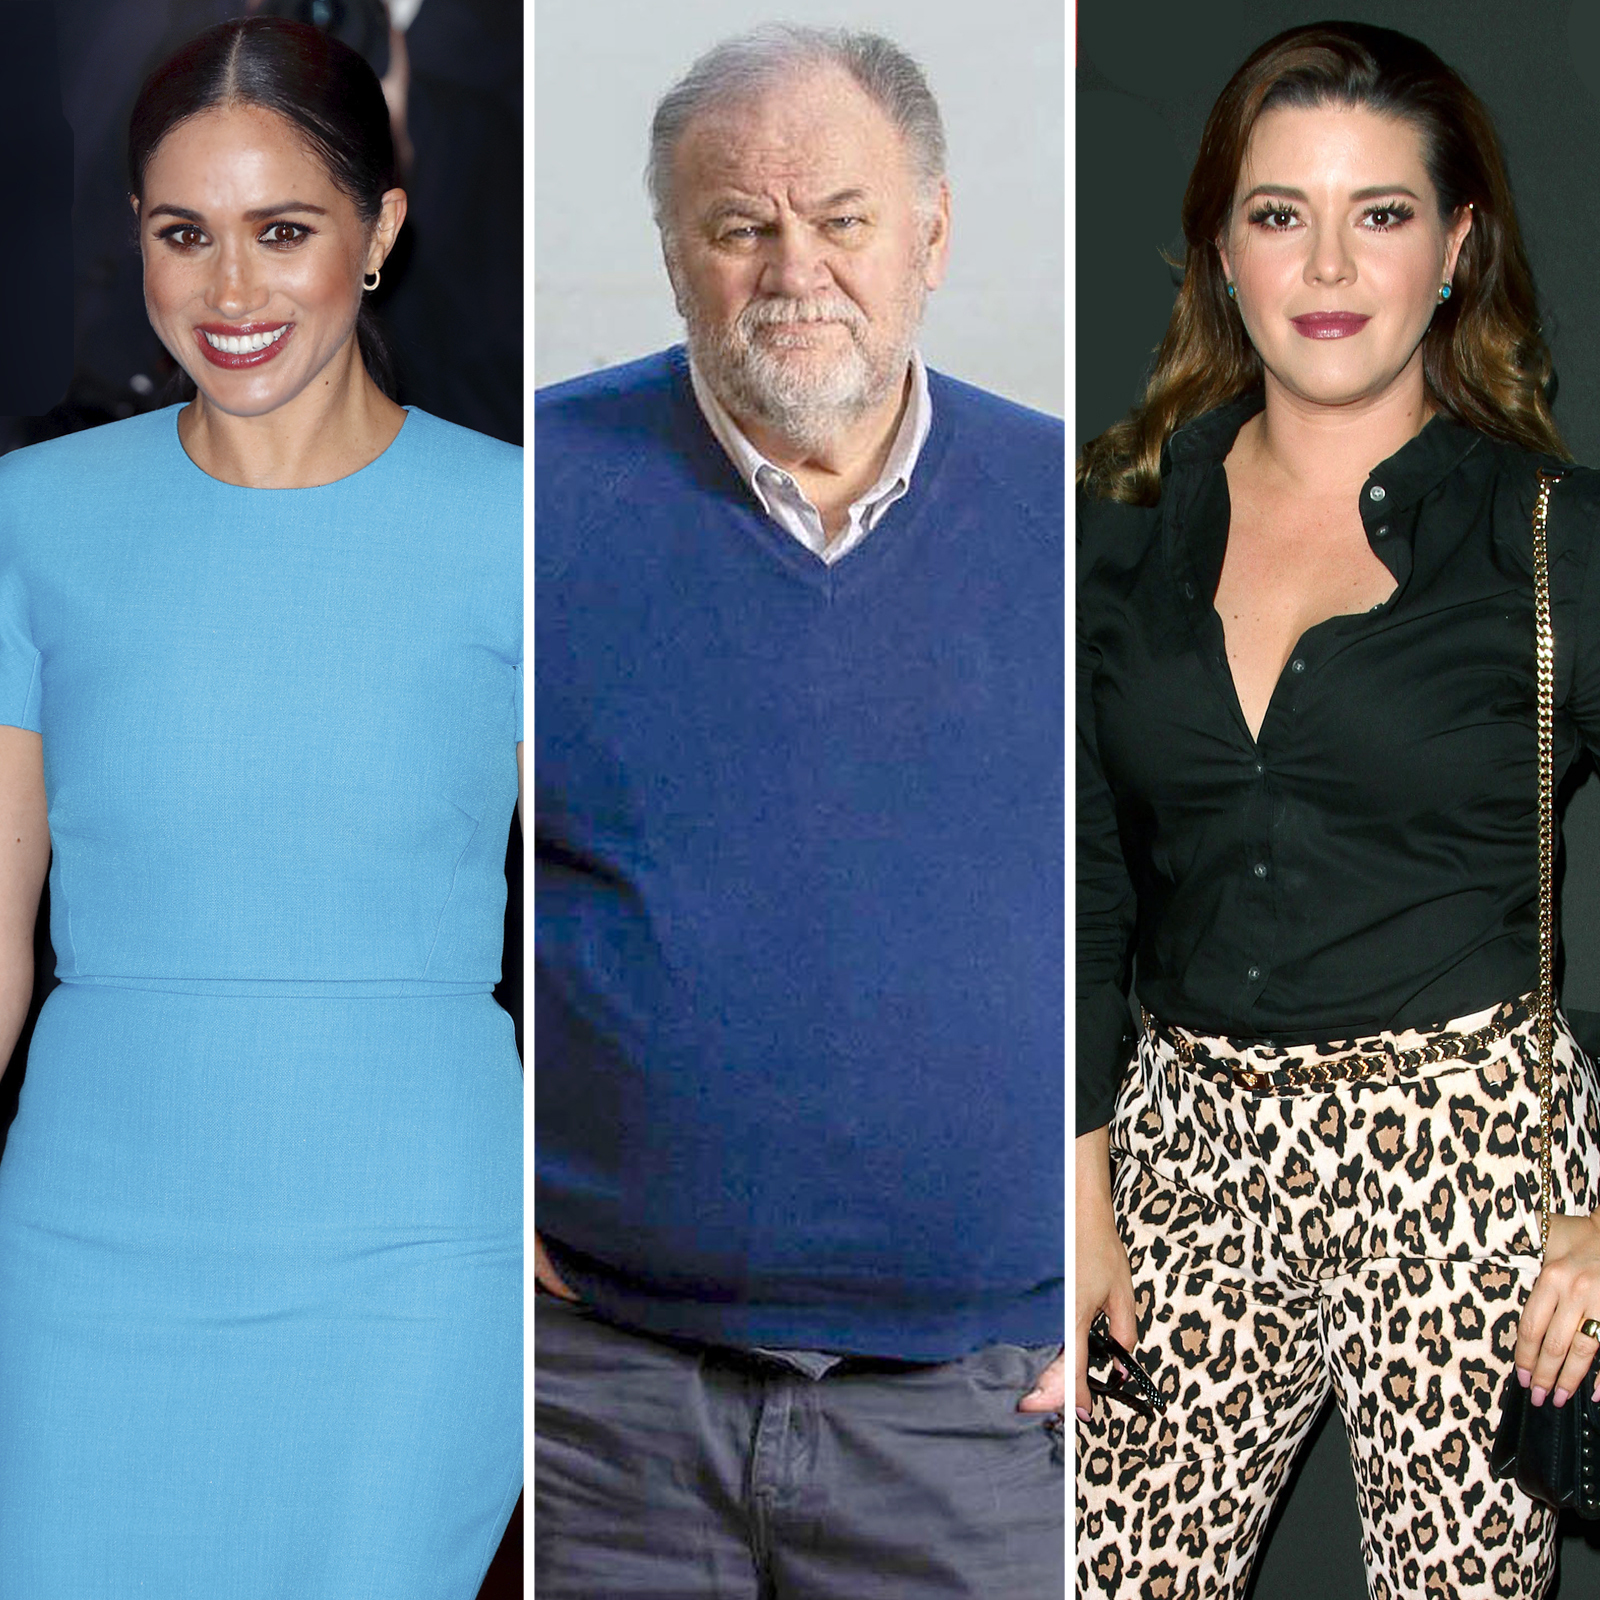 Meghan Markle, Thomas Markle y Alicia Machado